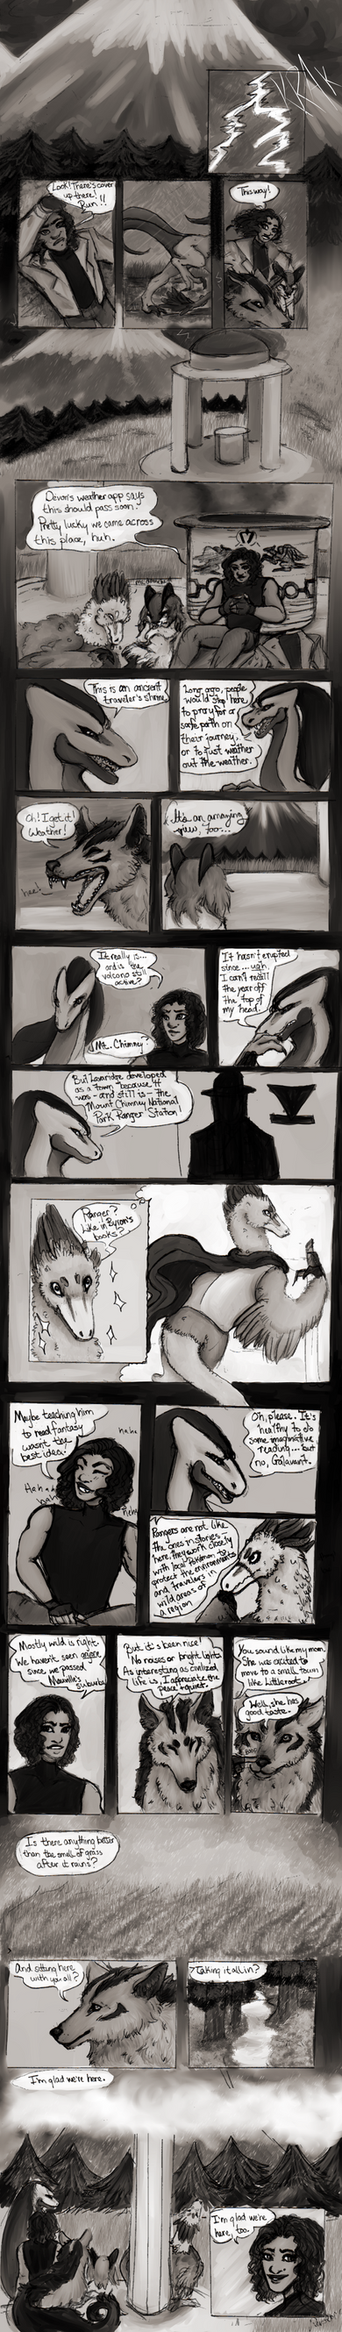 KOSMOS Page 164 by RRevenant